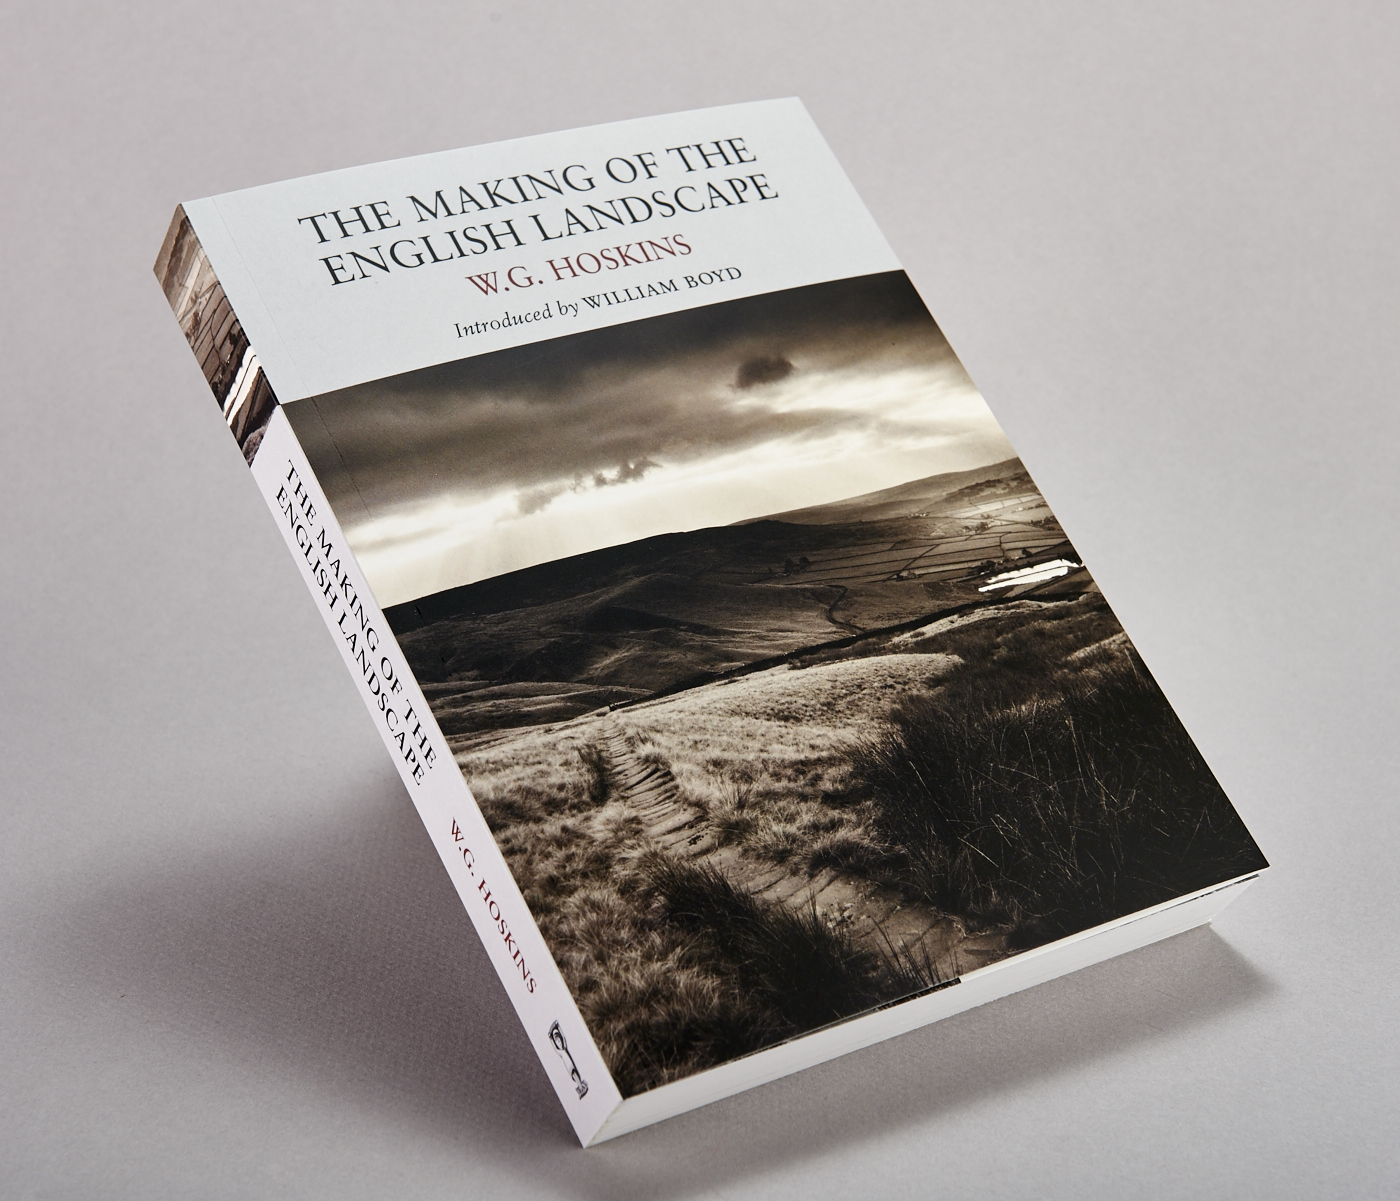 the making of the english landscape by w g hoskins